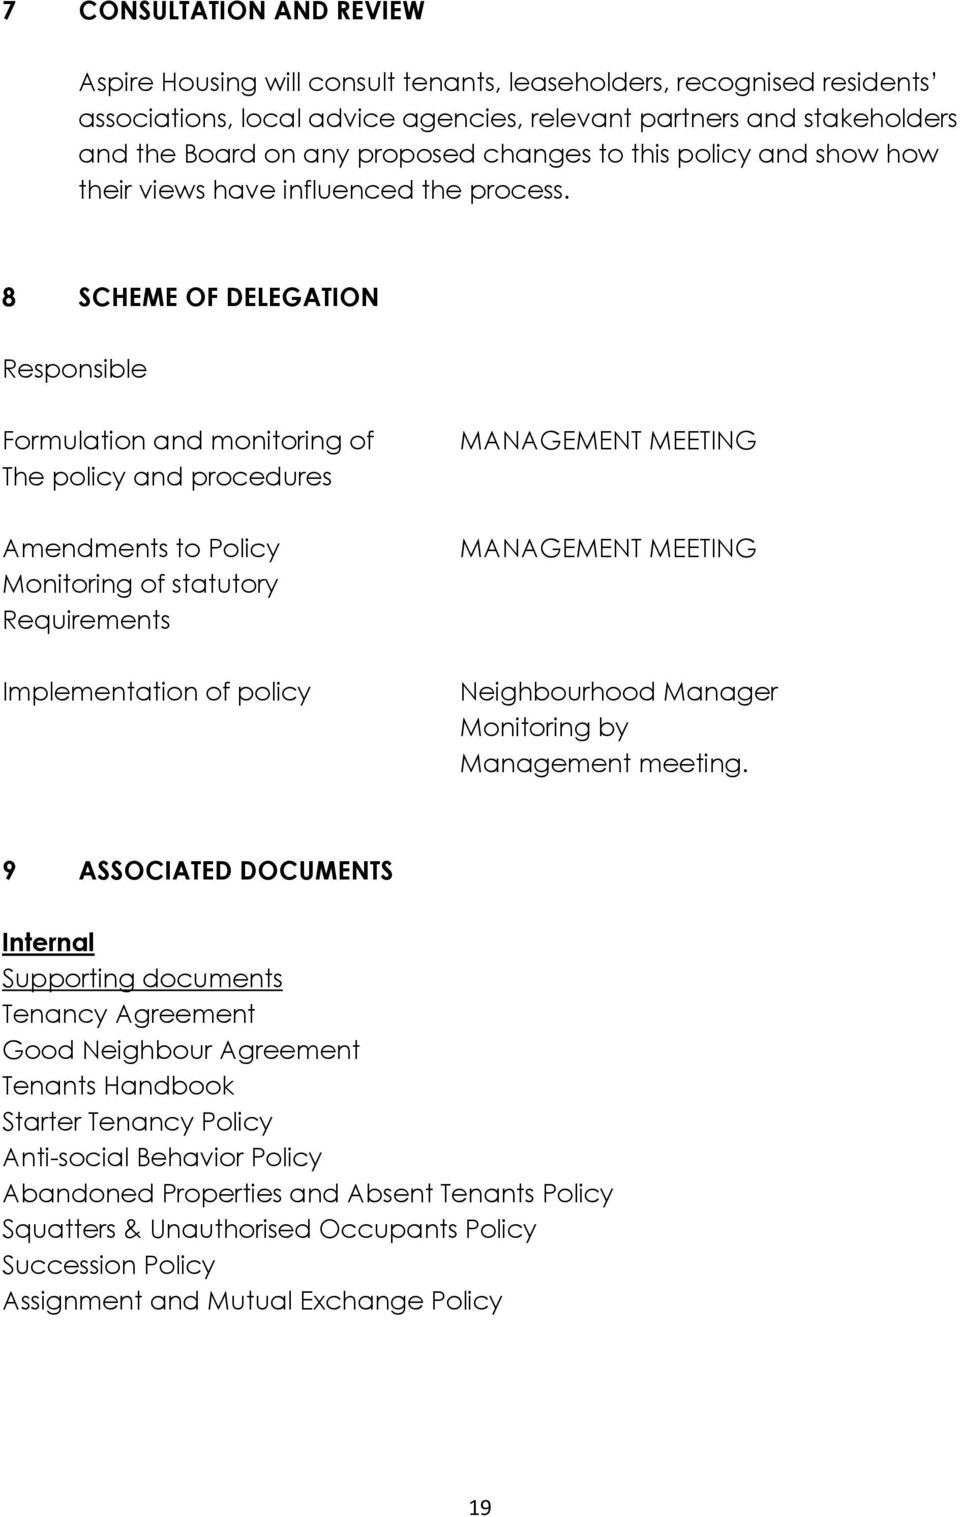 8 SCHEME OF DELEGATION Responsible Formulation and monitoring of The policy and procedures MANAGEMENT MEETING Amendments to Policy Monitoring of statutory Requirements MANAGEMENT MEETING